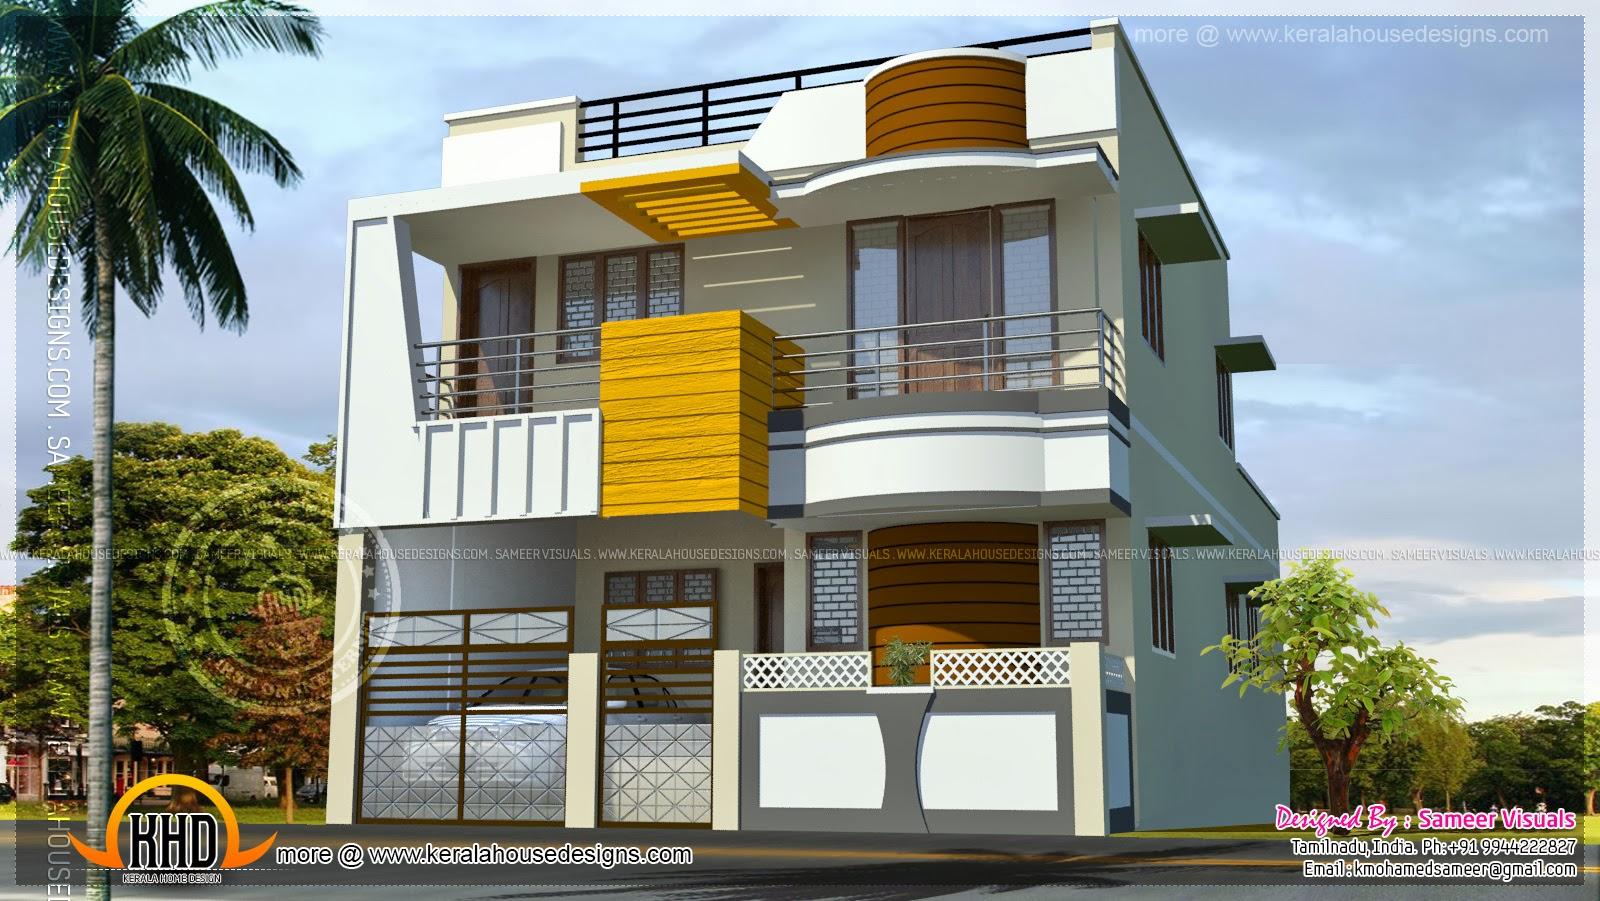 Double storied modern south indian home kerala home for Home models in tamilnadu pictures